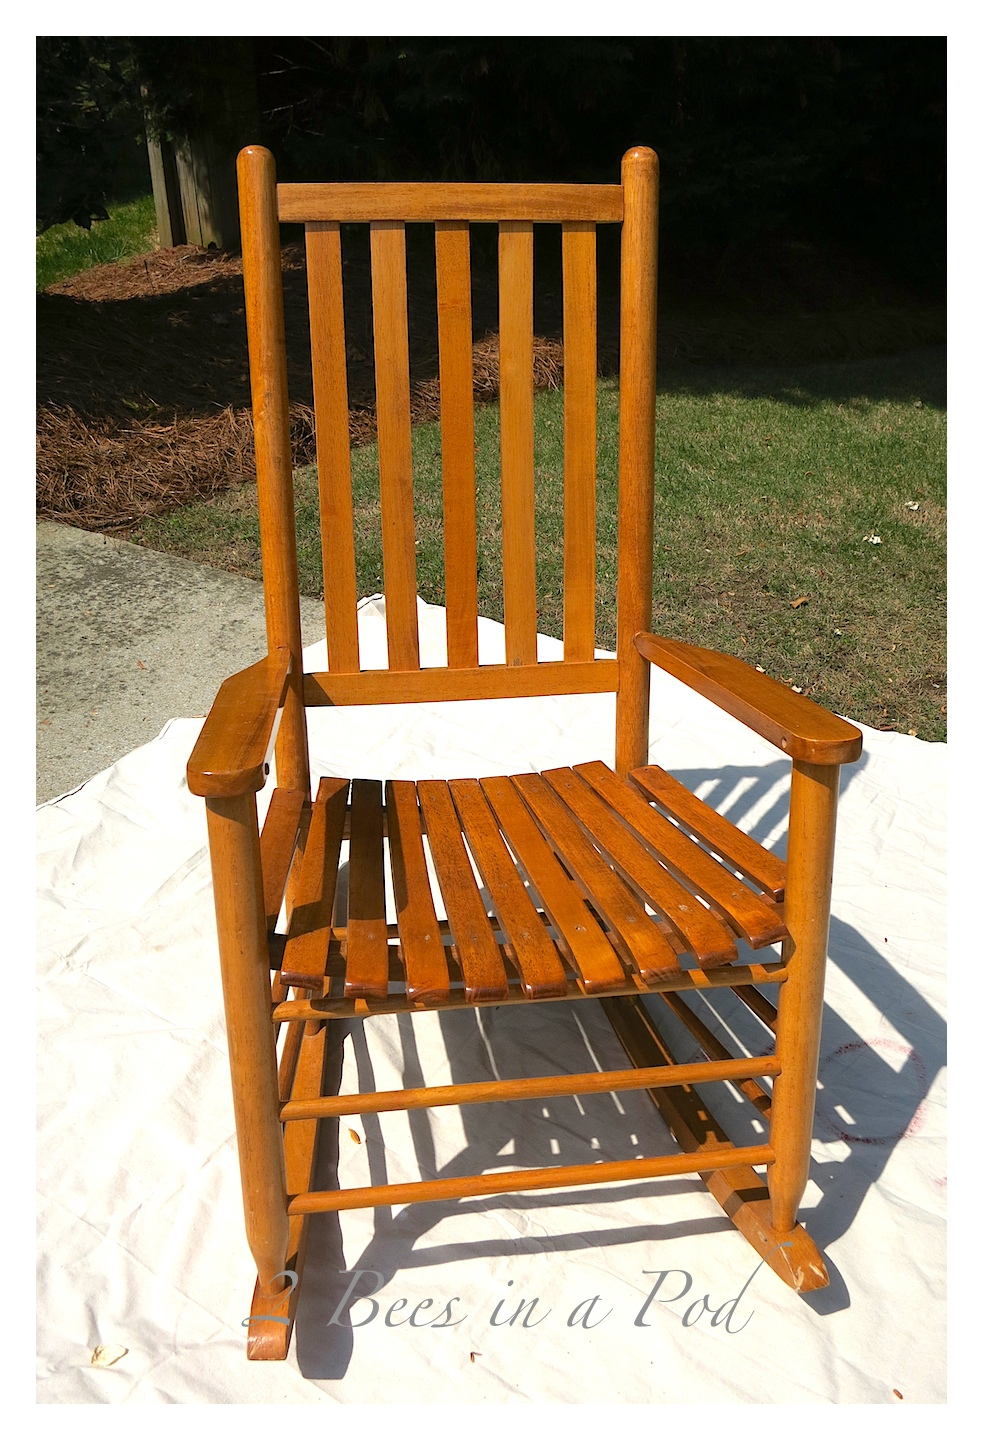 A vintage rocker gets a makeover. By adding chalk paint and clear wax it modernized the chair, but get the integrity of the age of the rocker intact.